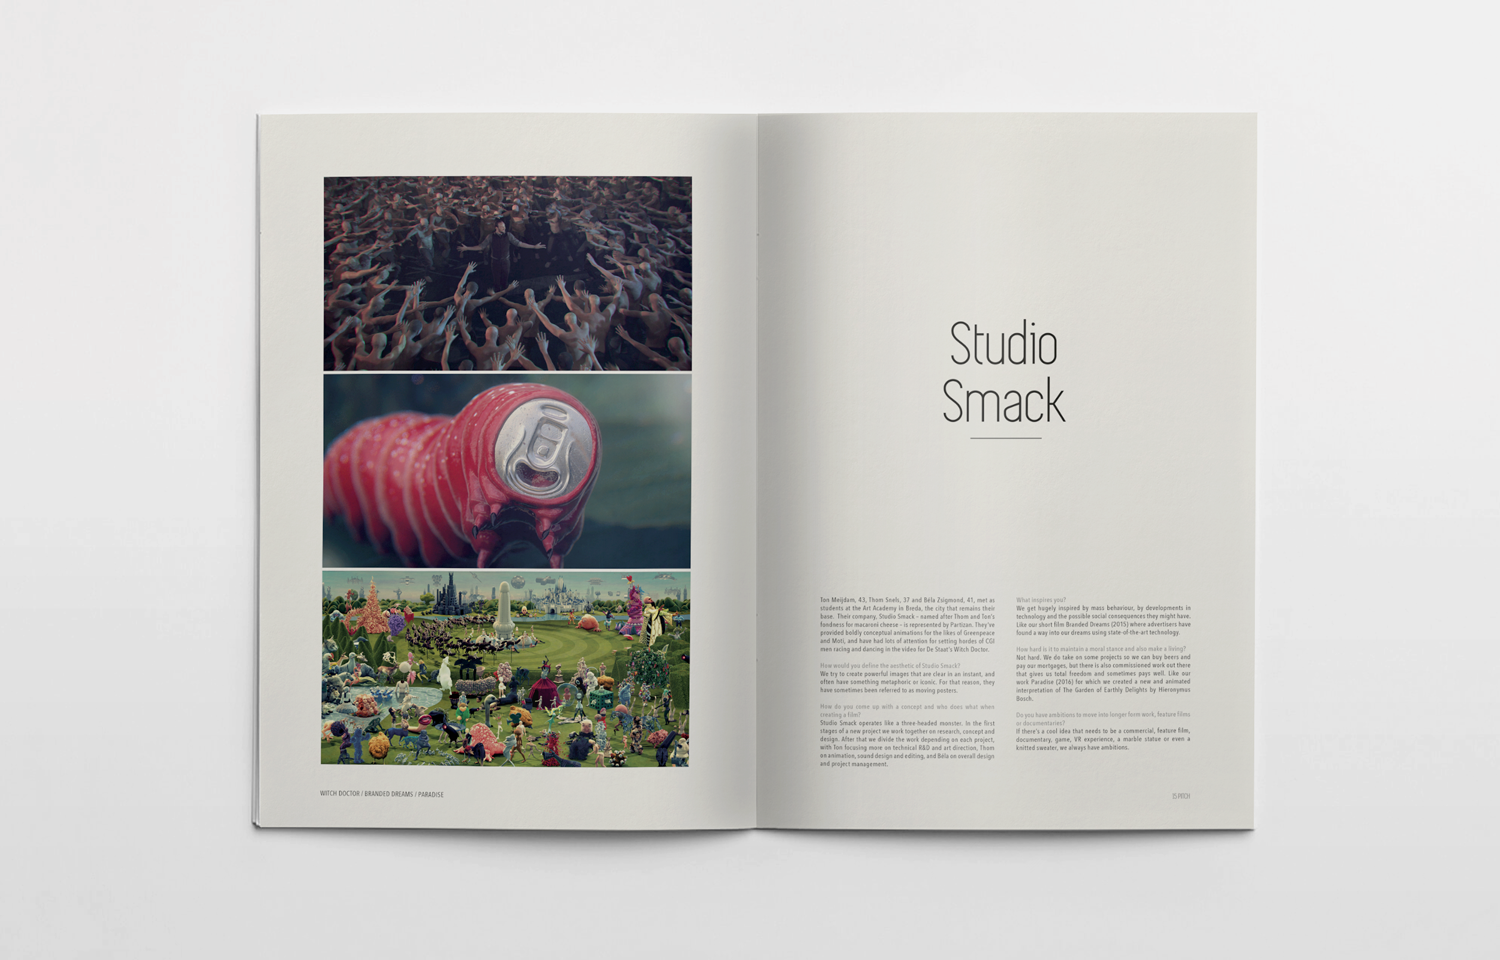 Editorial design for Pitch featuring the work of Studio Smack.